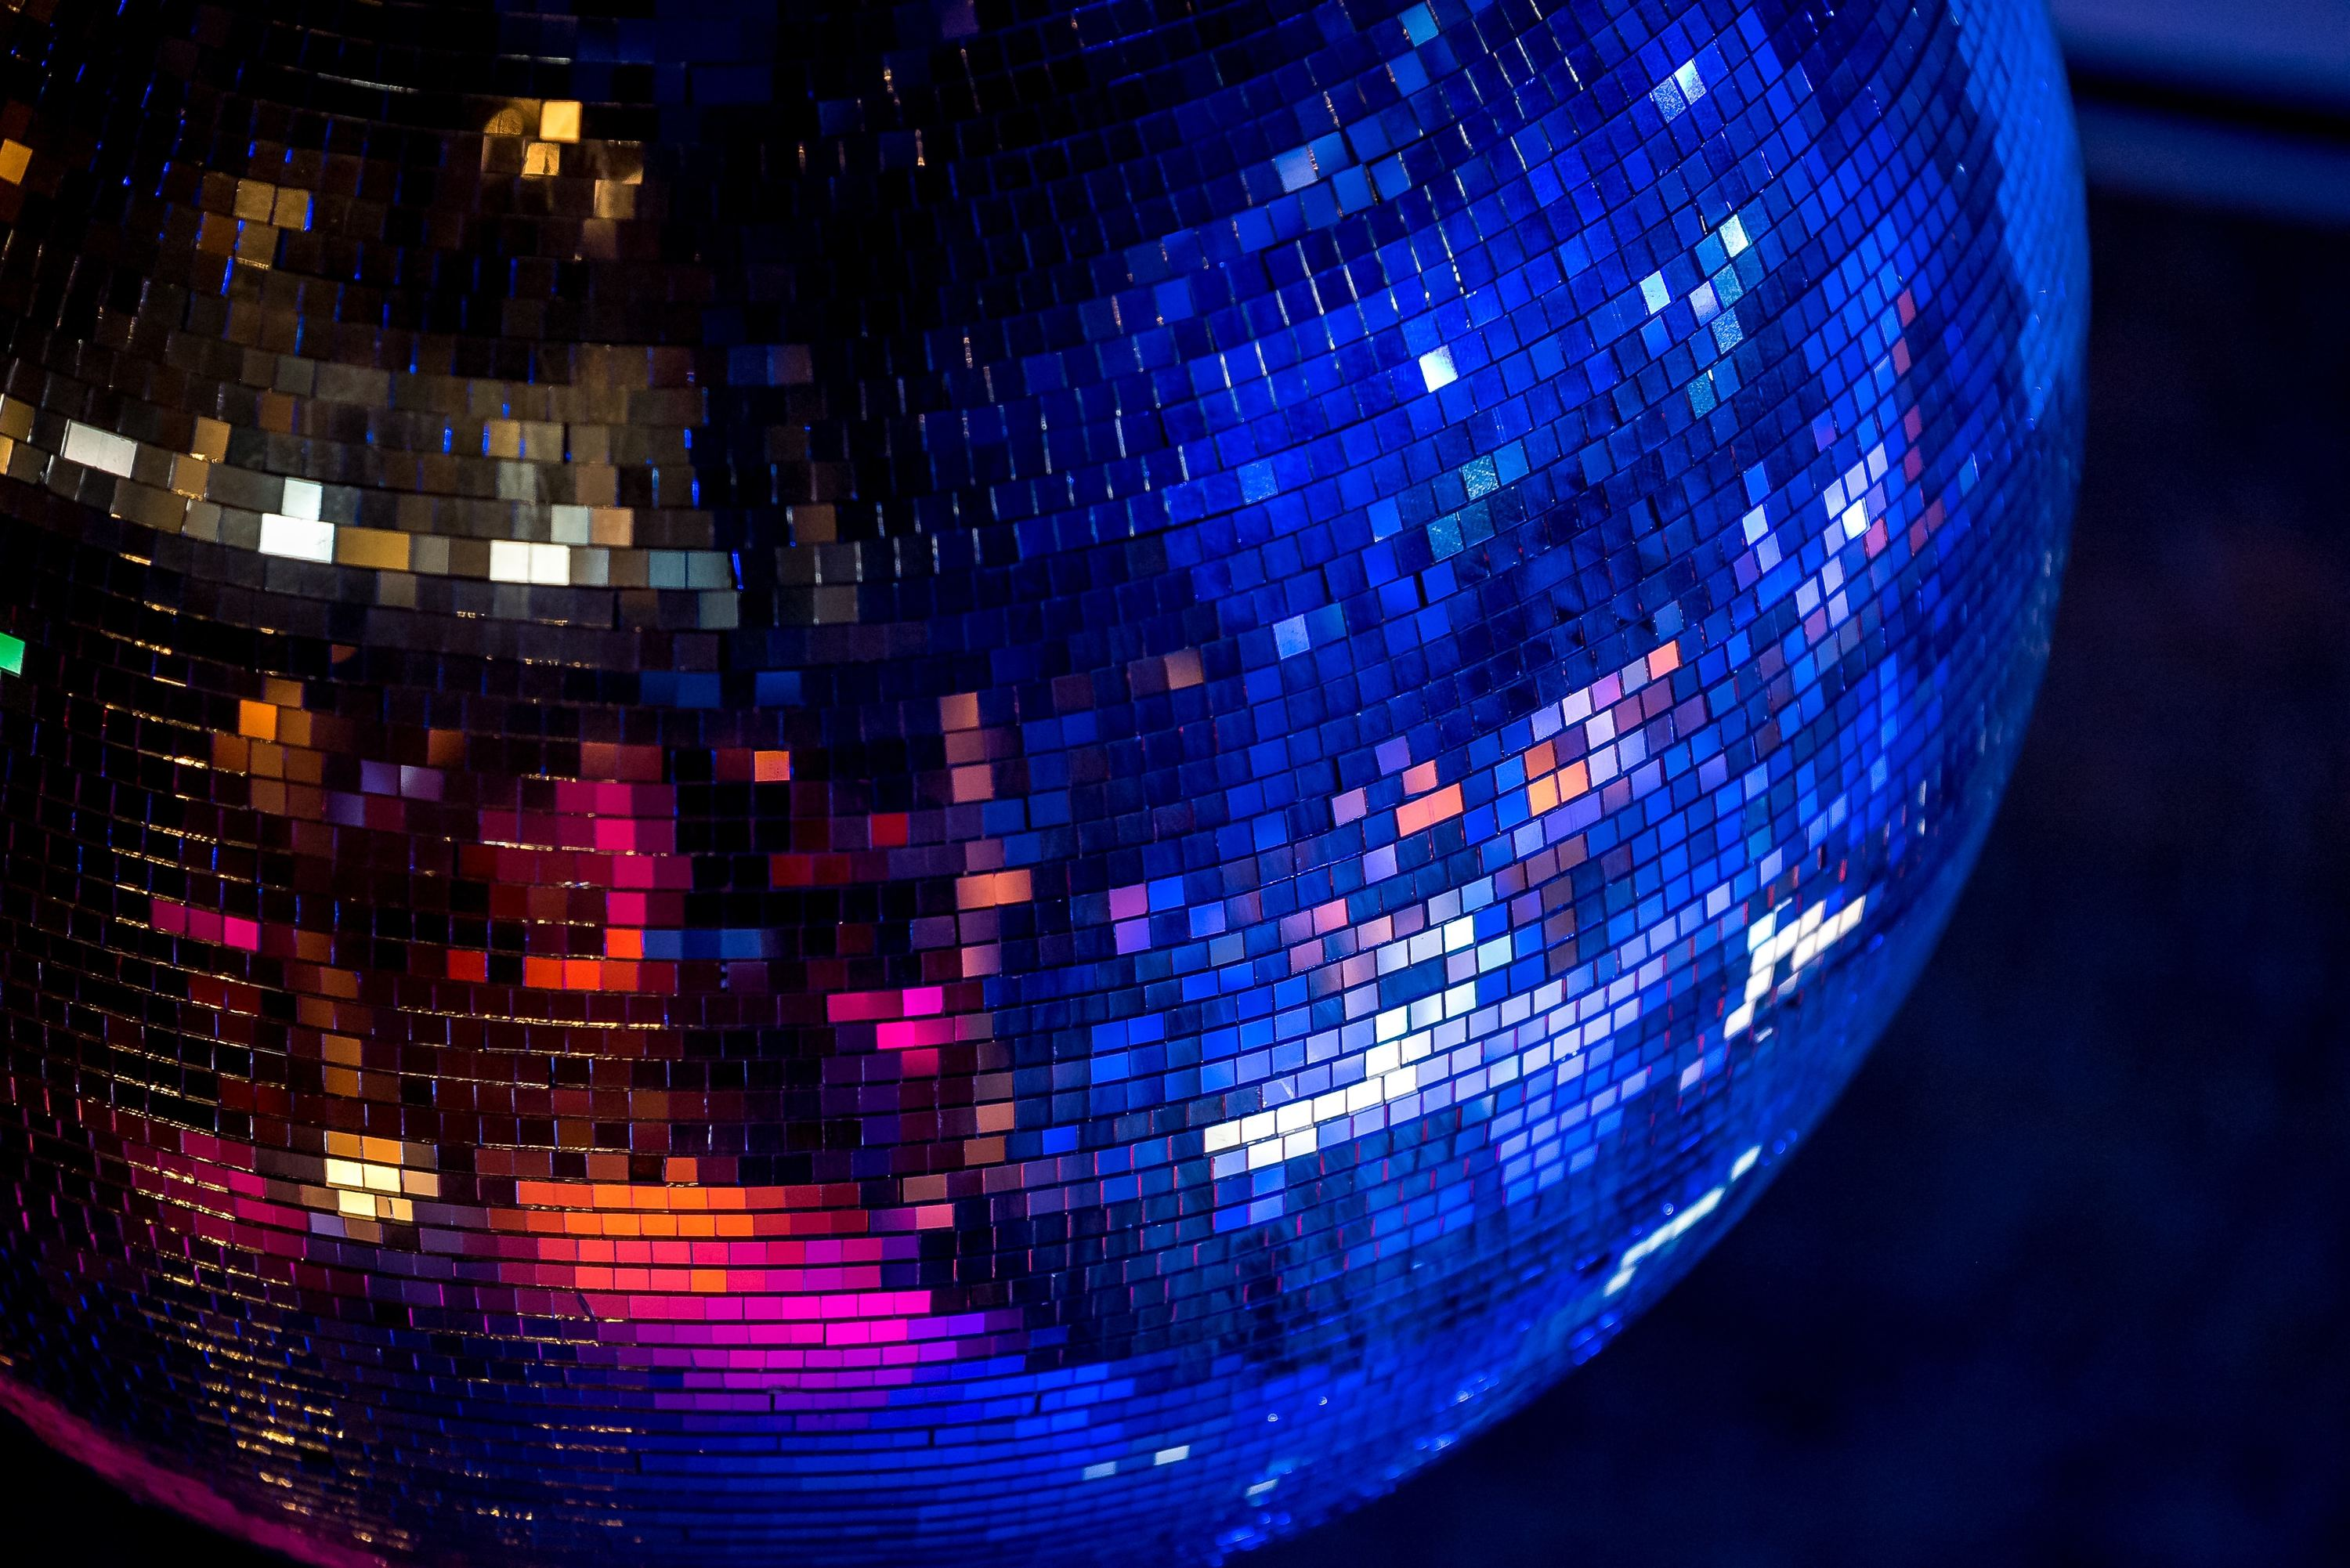 Nightclub disco ball